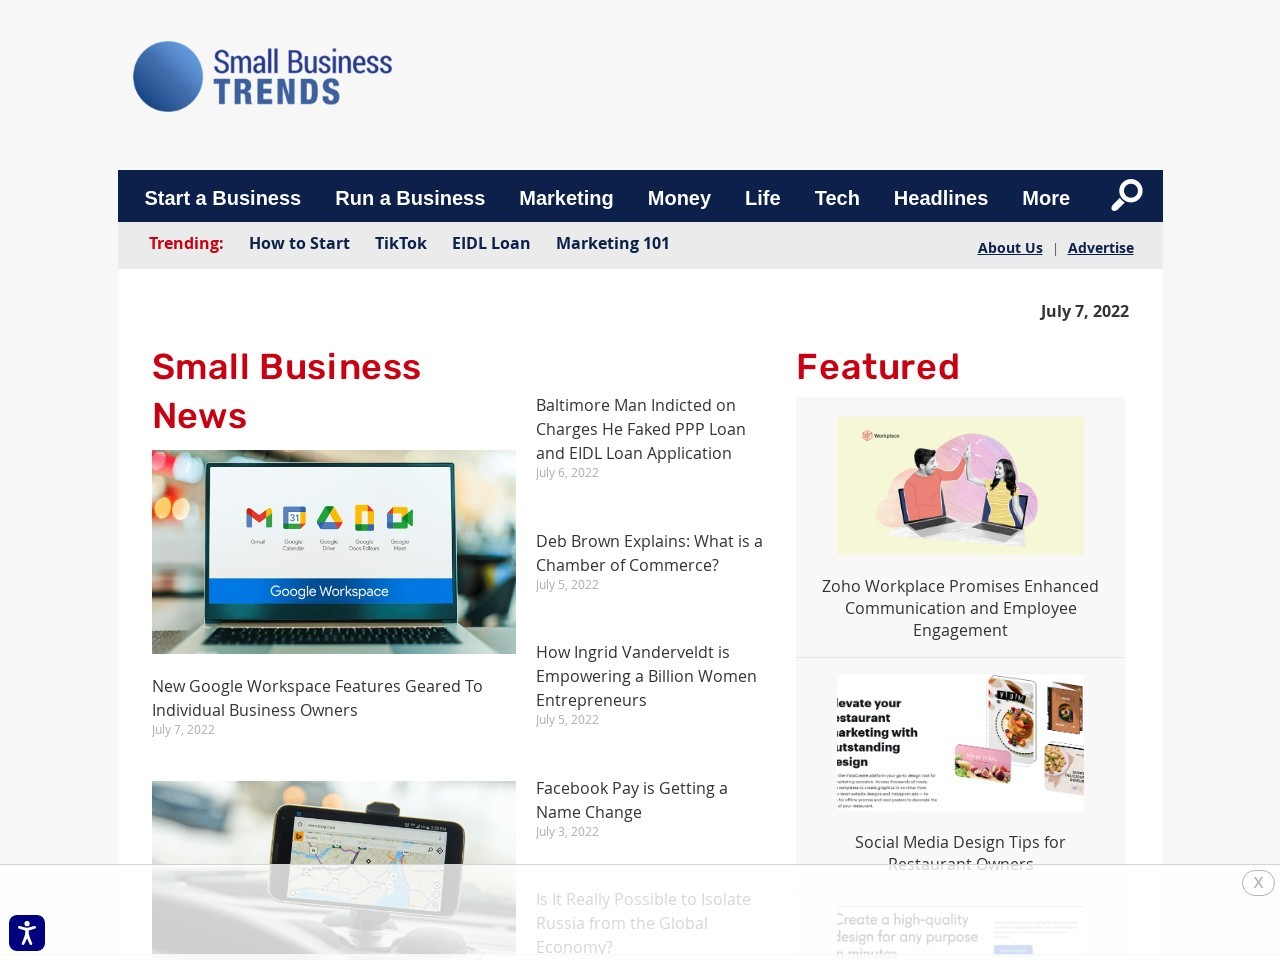 Small Business News, Tips, Advice - Small Business Trends